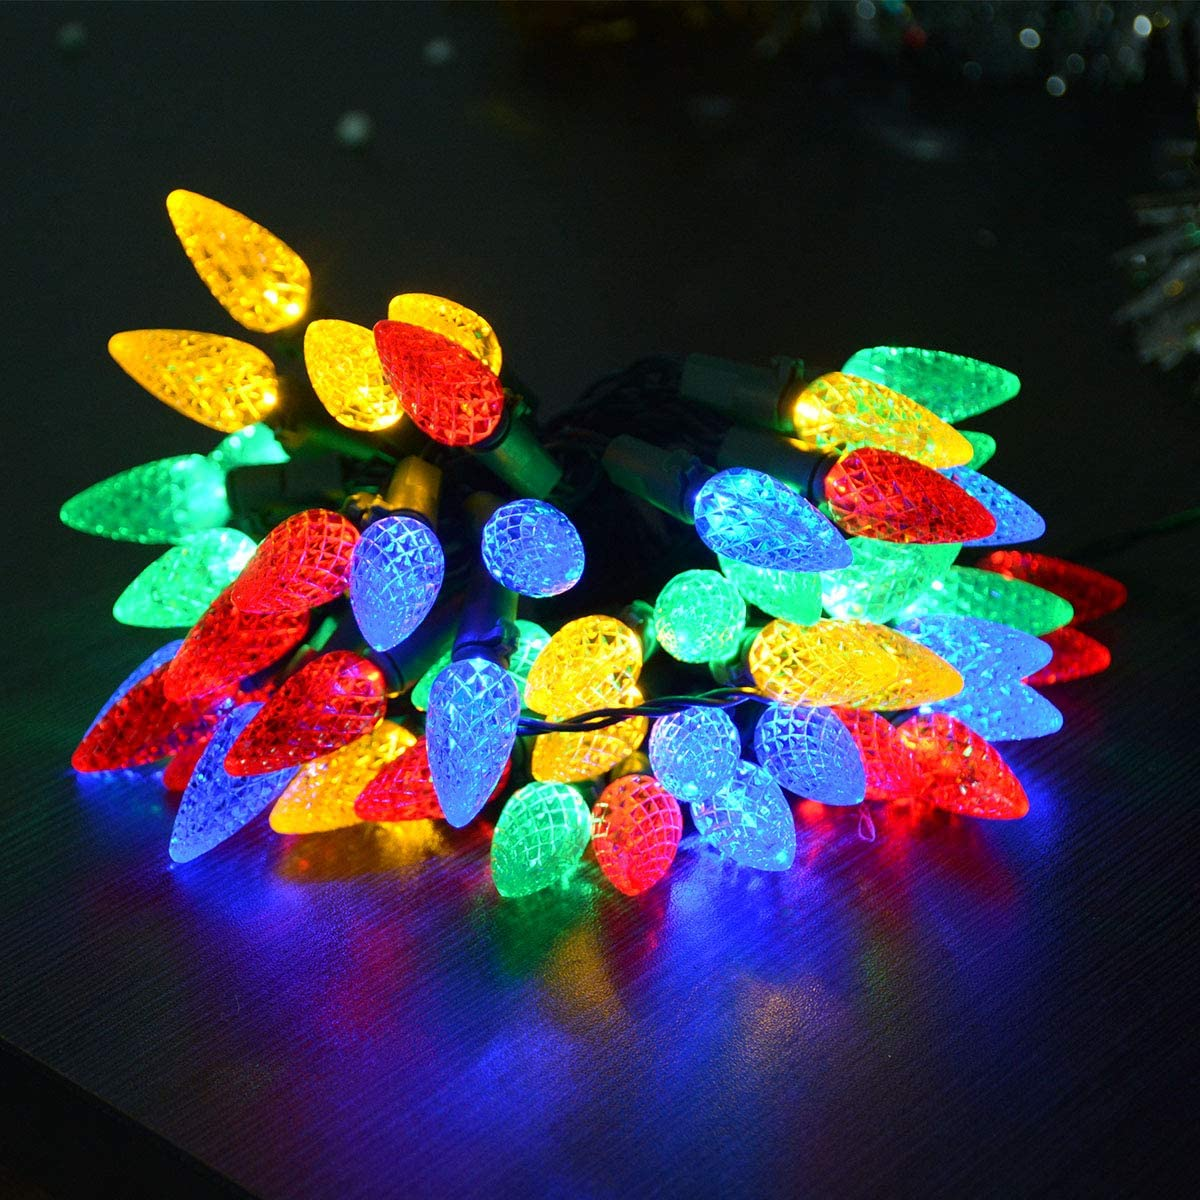 Awinking 17.7Ft 50 LED C6 Bulb Christmas Lights Multicolored, Battery Operated Christmas Tree Lights, Green Wire Colored Christmas Lights for Tree, Christmas Decor, Wedding Party, Bedroom, Patio, Home